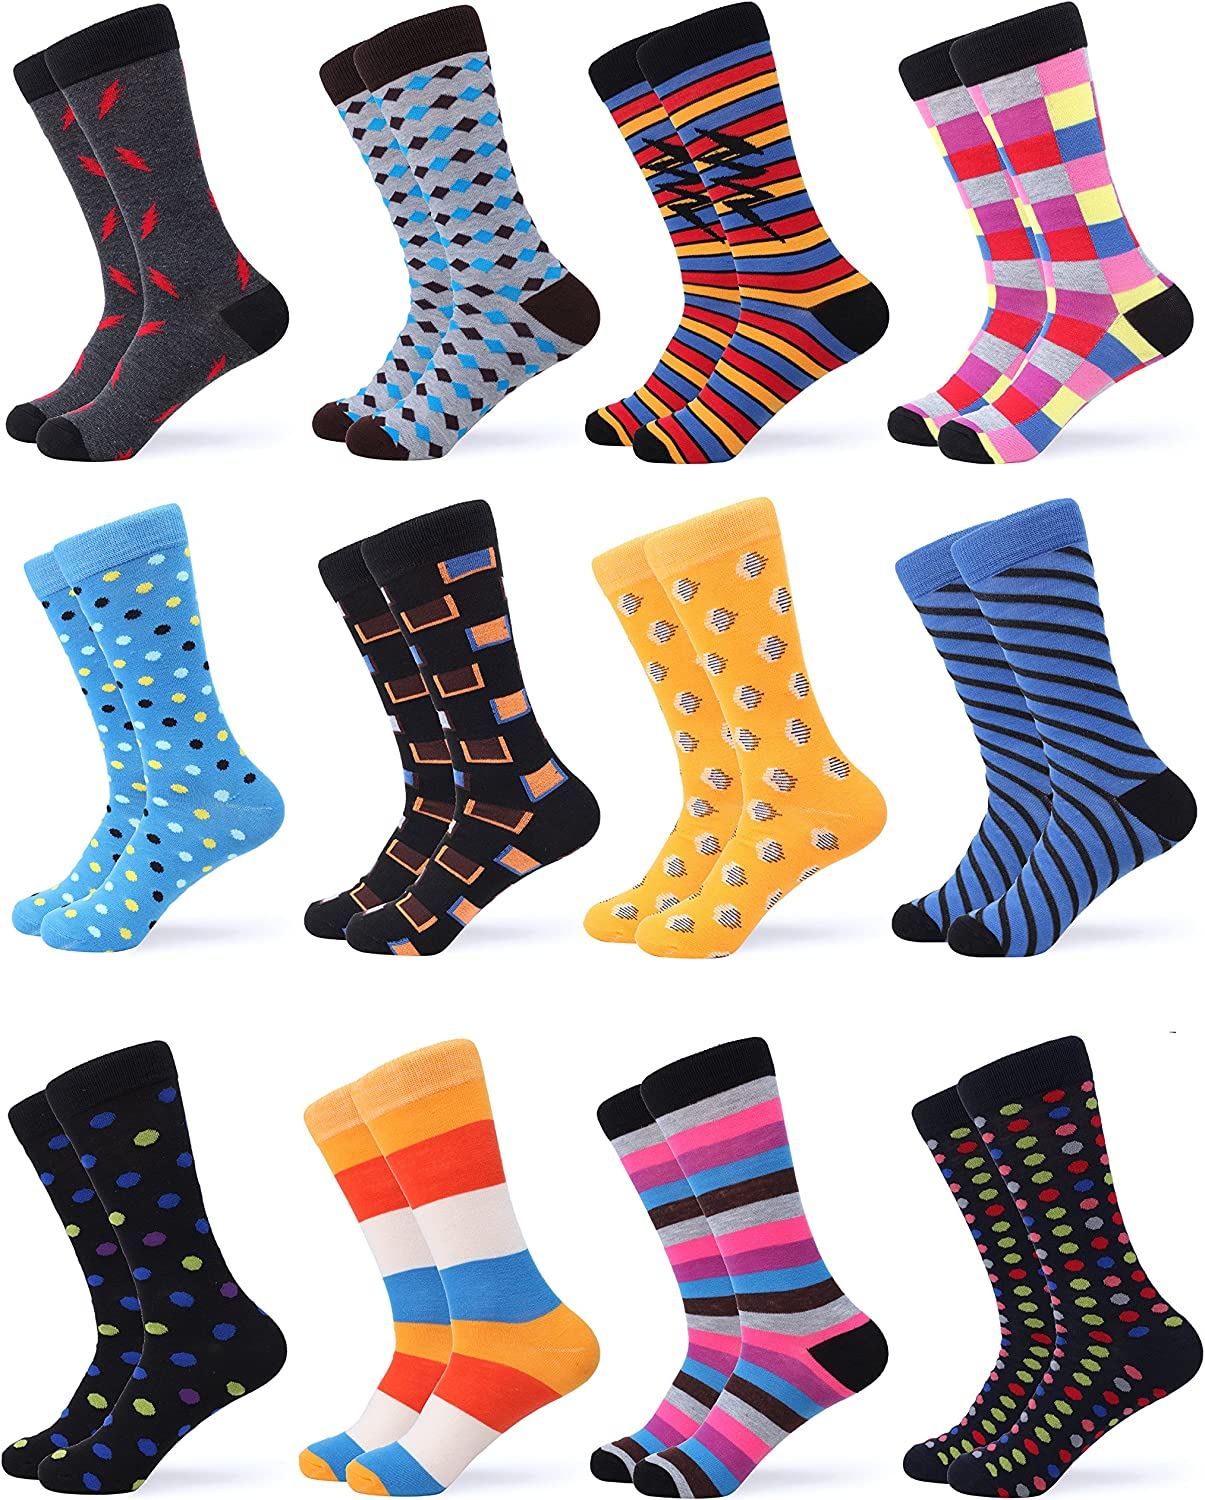 Funky Colorful Socks for Men 12 Pack Gallery Seven Mens Dress Socks